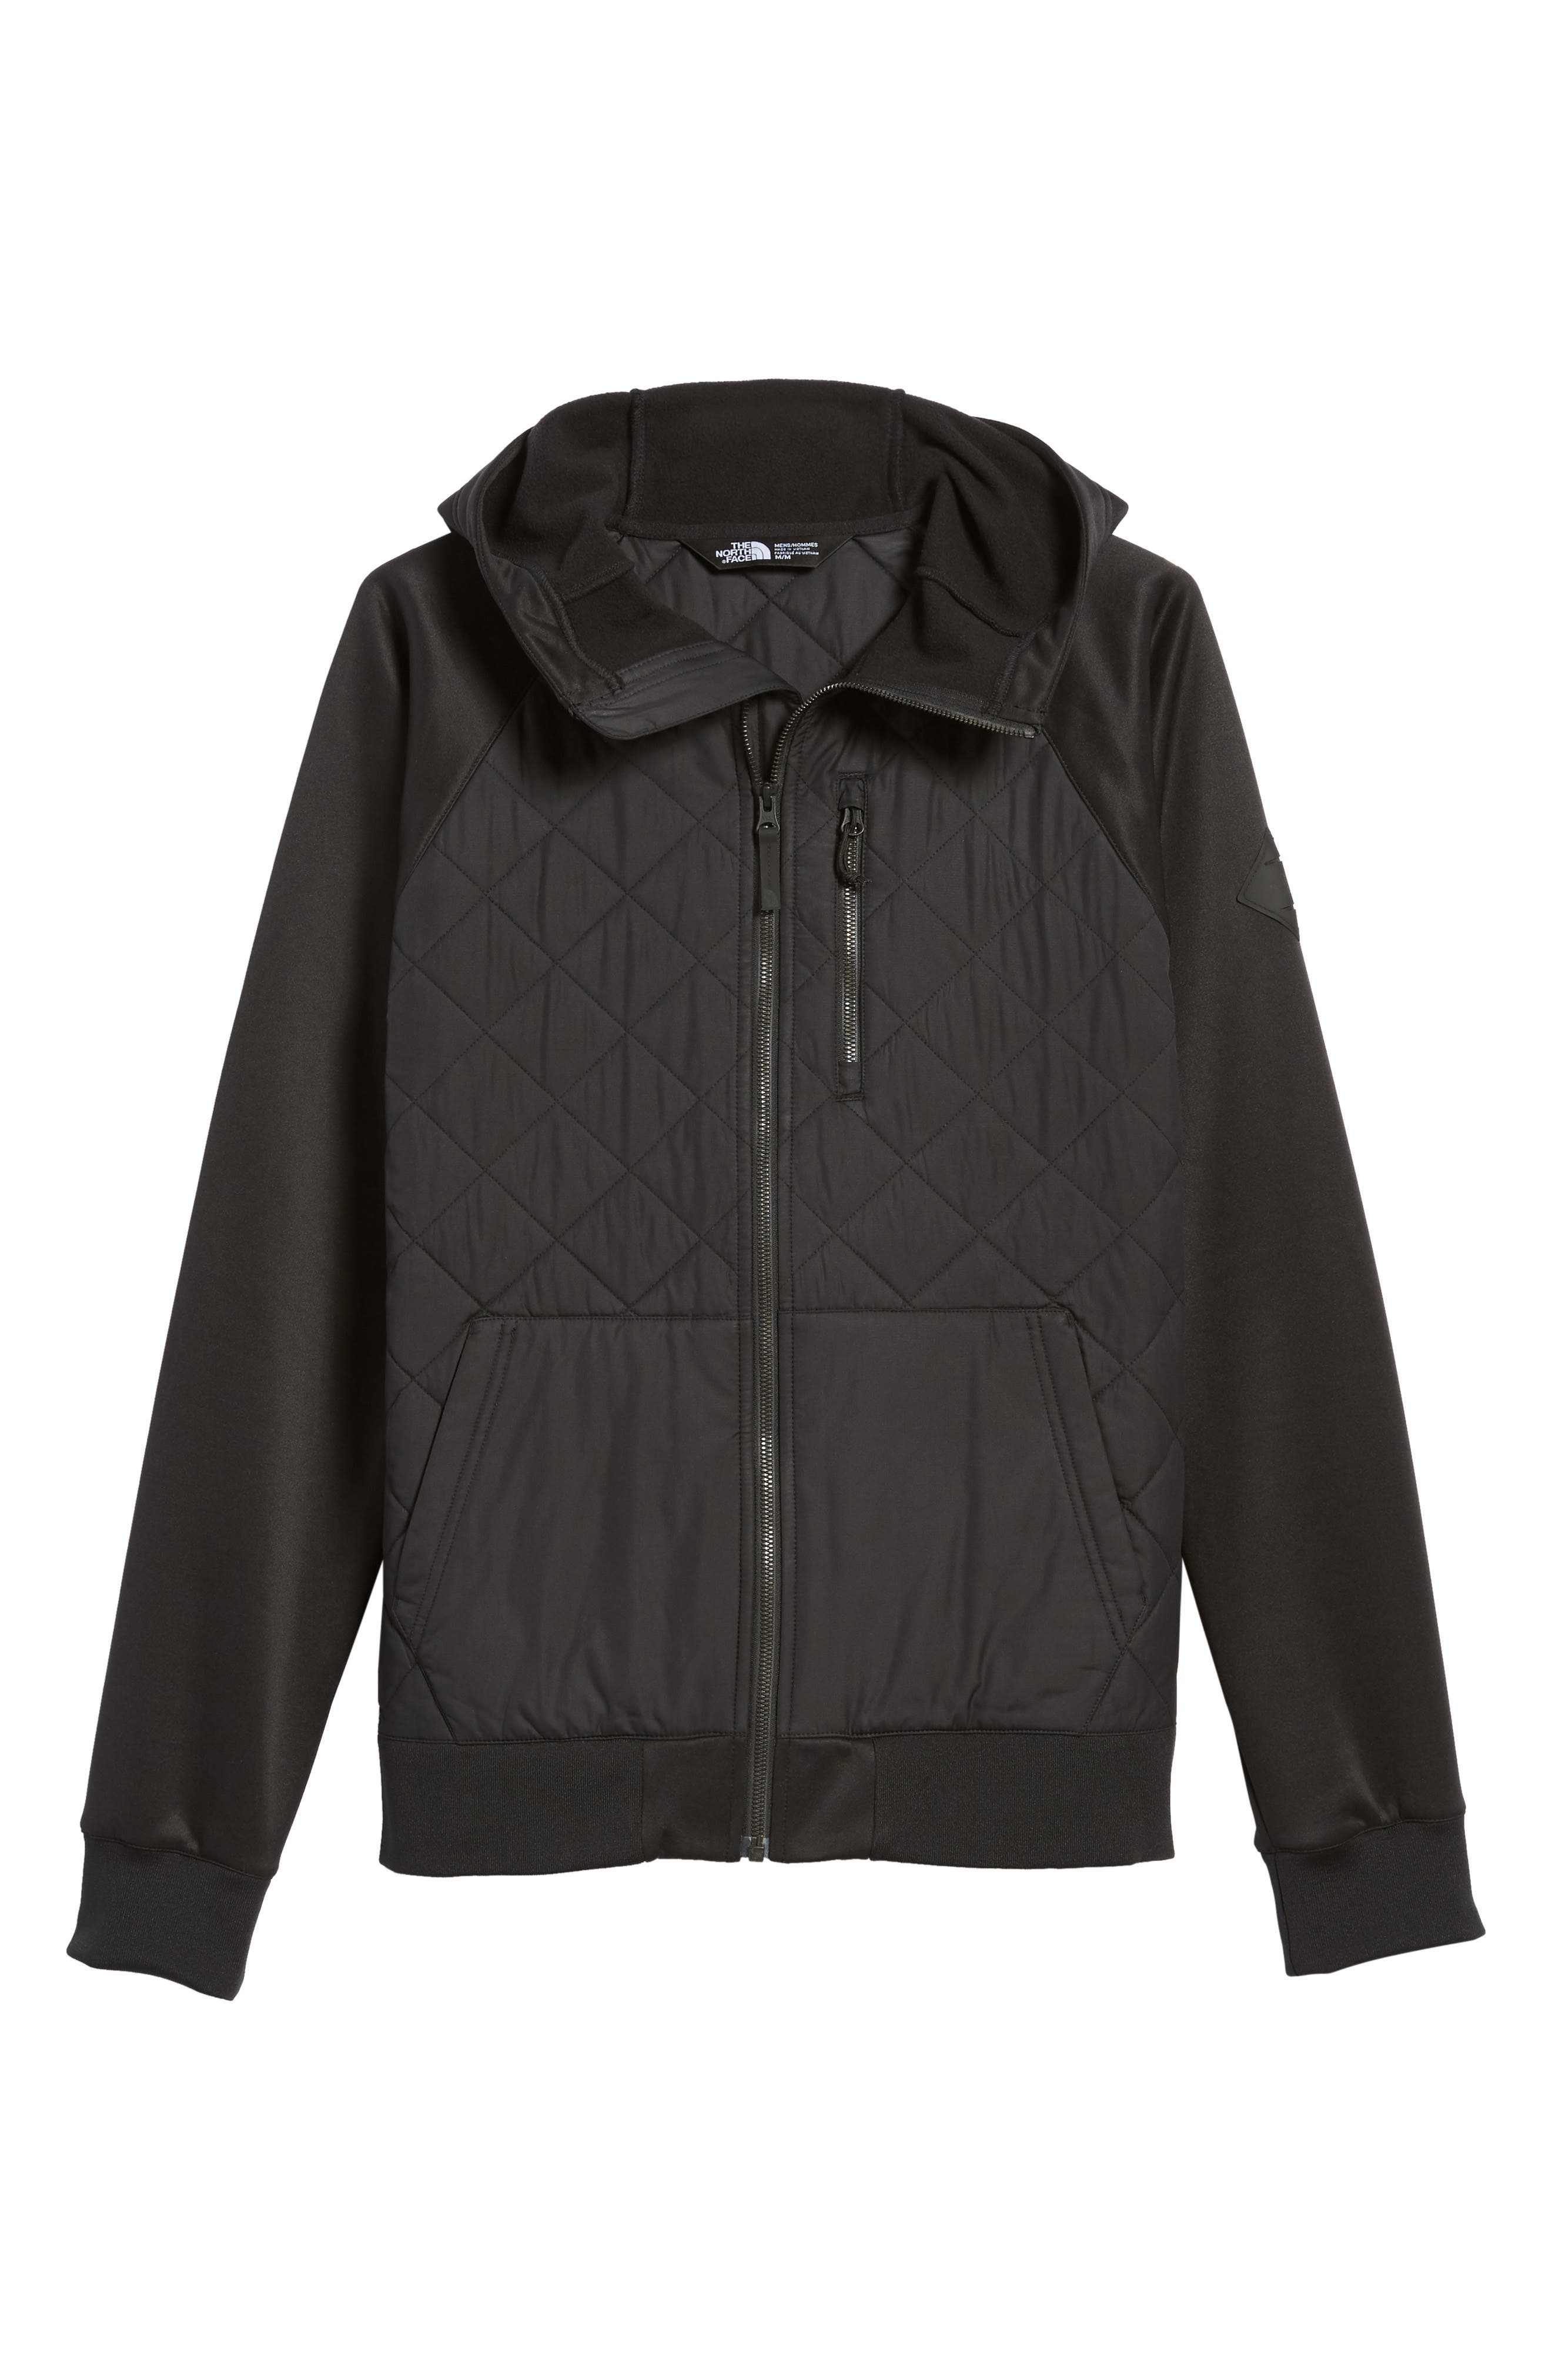 Pilsen Hybrid Jacket,                             Alternate thumbnail 14, color,